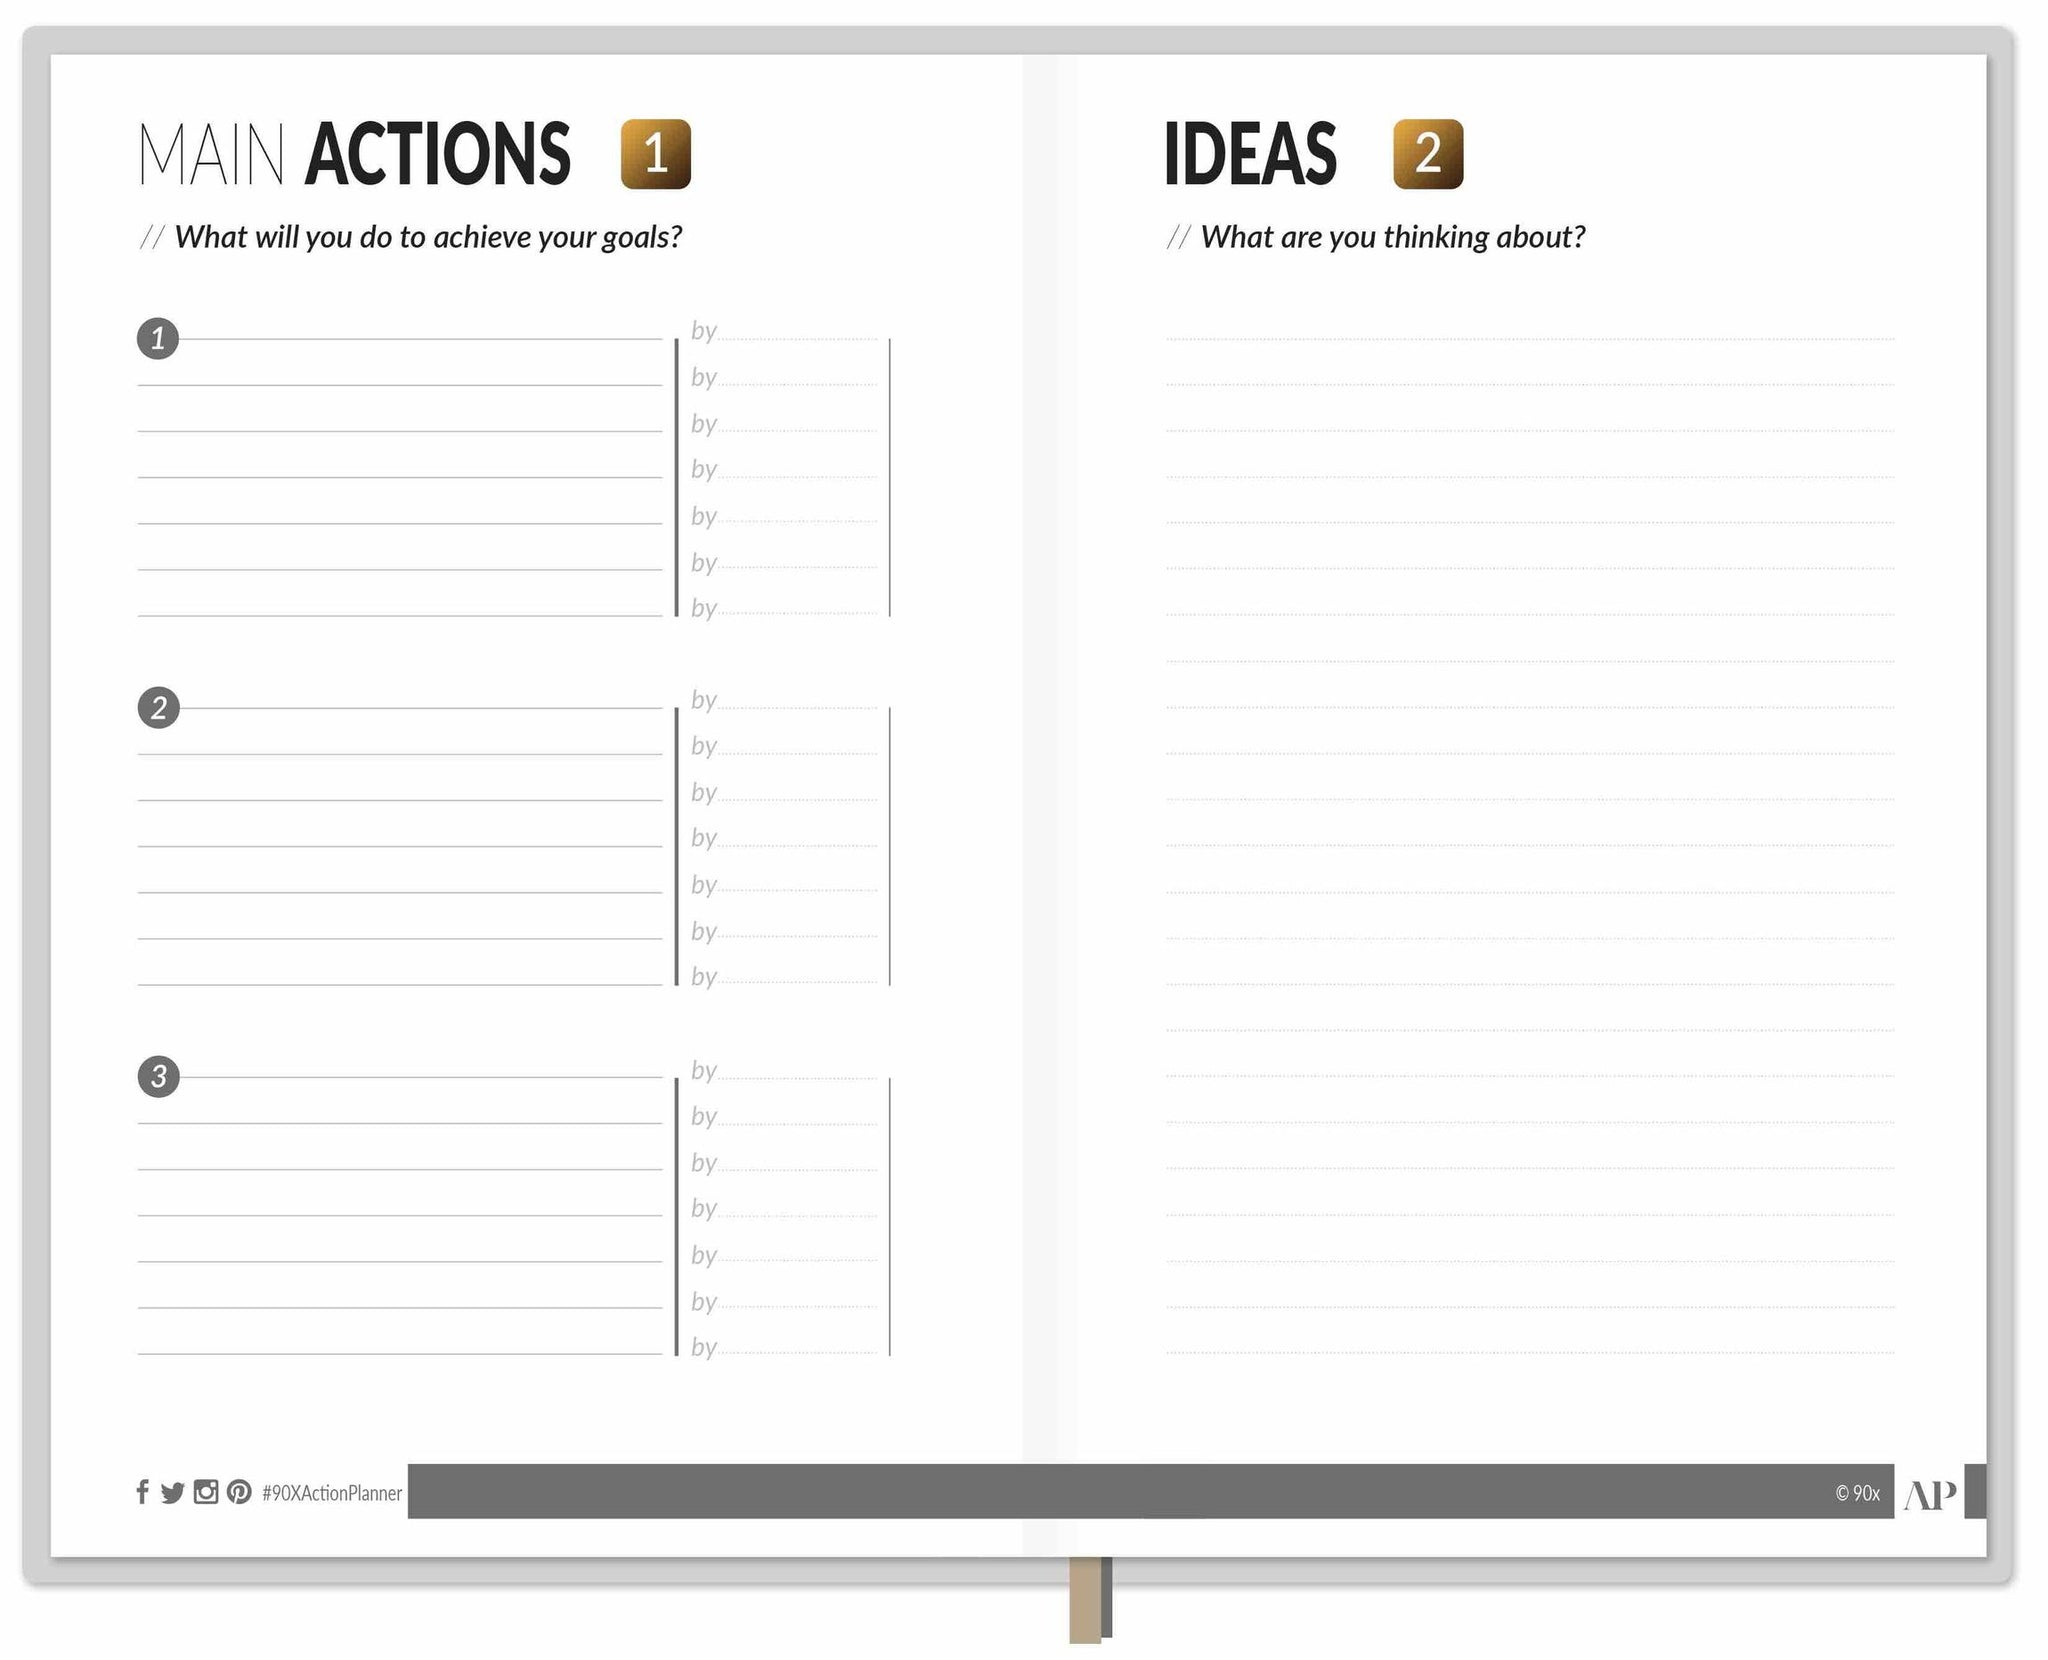 PDF for 90X® Action Planner